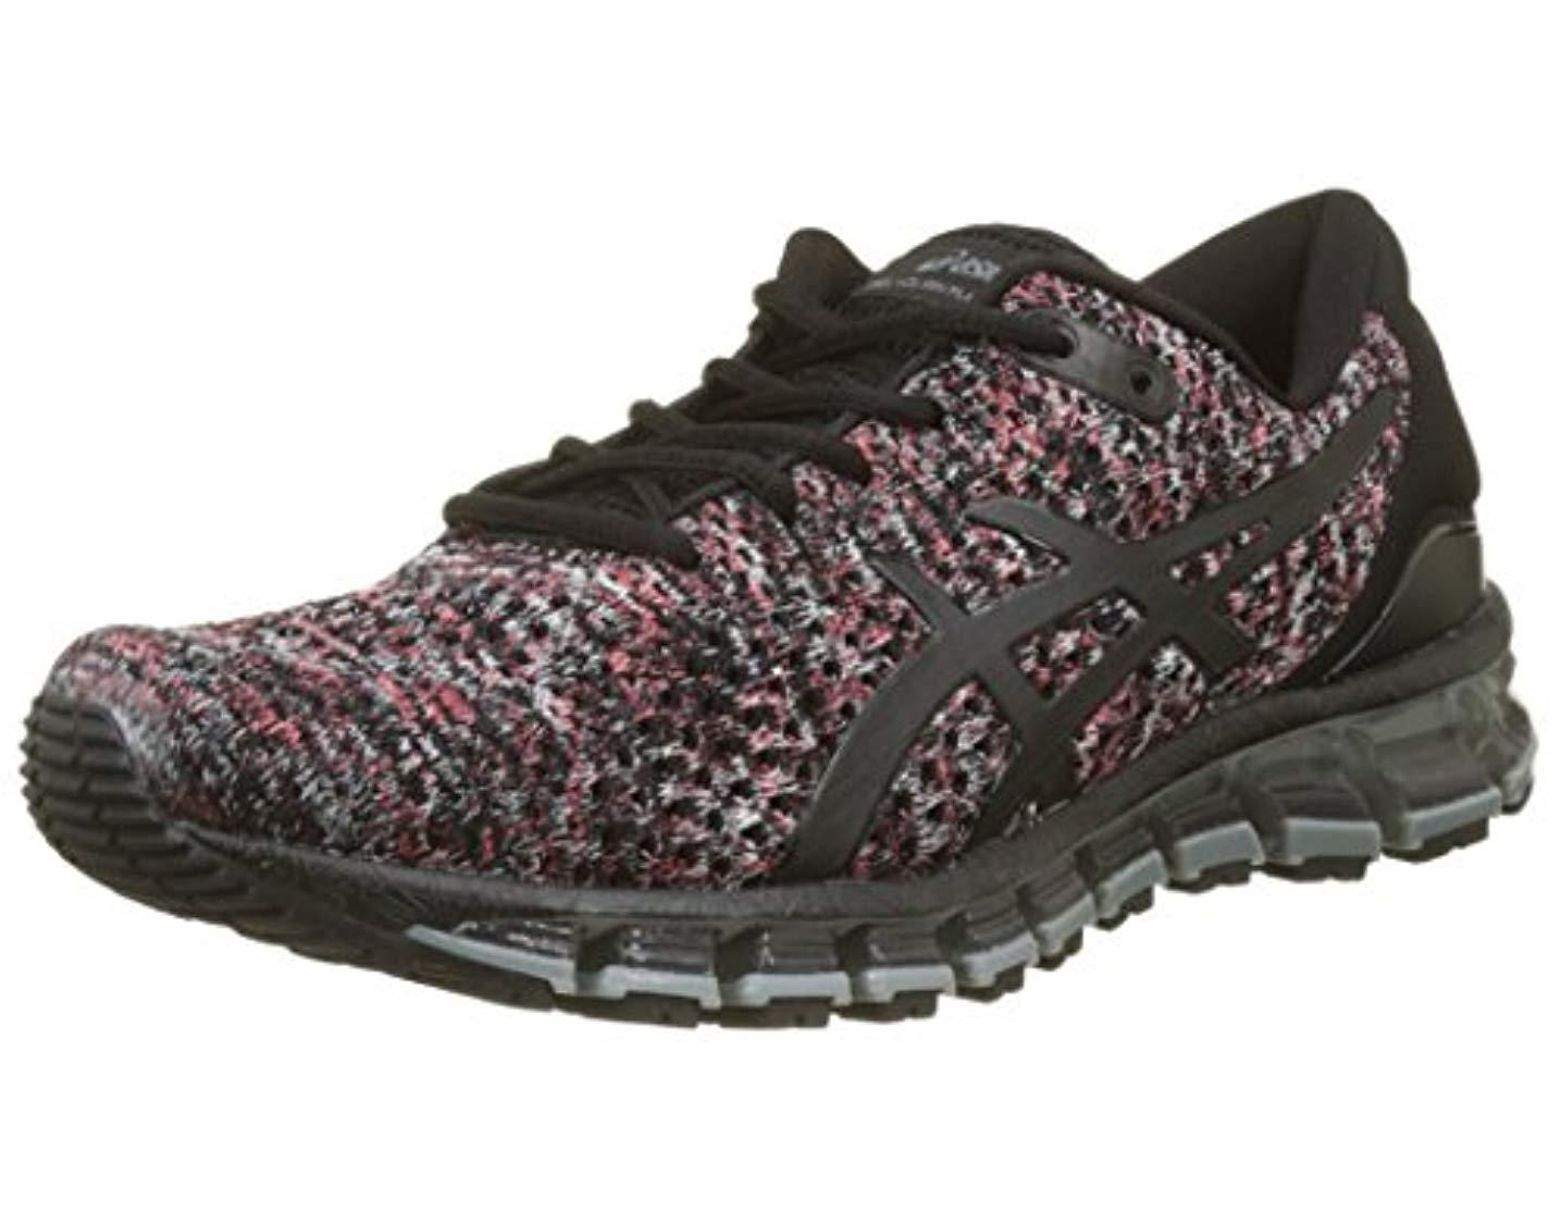 detailed look 9a809 c0c4c Asics Gel-quantum 360 Knit 2 Running Shoes in Black for Men - Save 33% -  Lyst